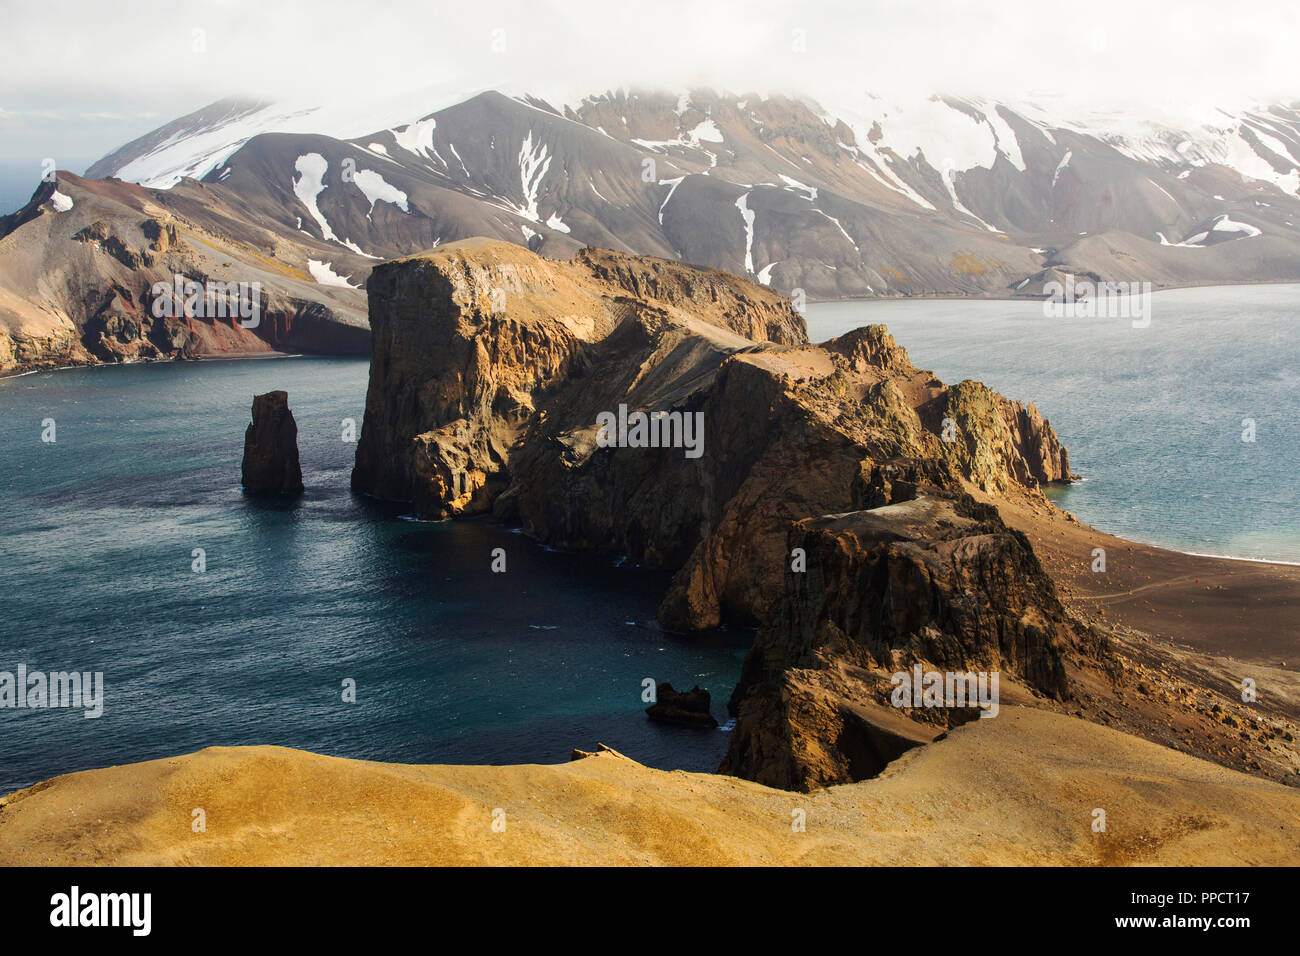 Deception Island in the South Shetland Islands off the Antarctic Peninsula is an active volcanic caldera. Stock Photo